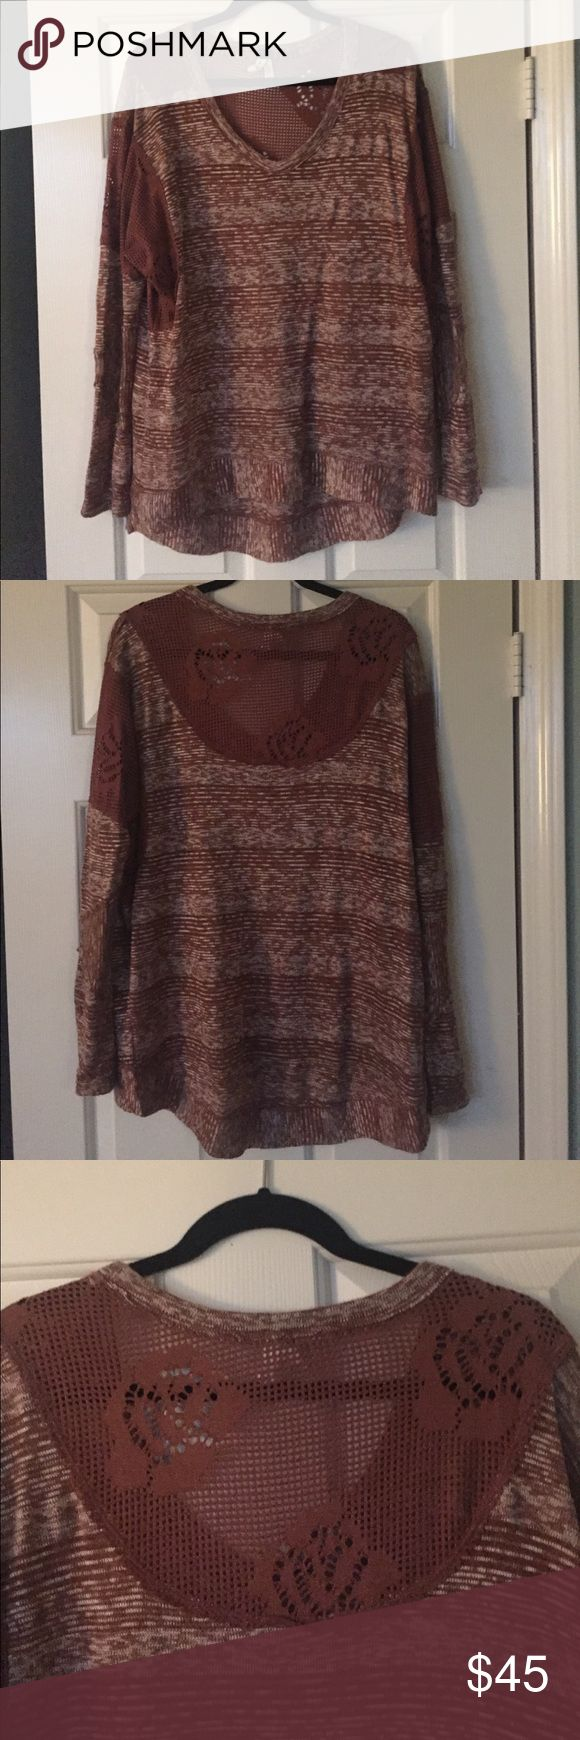 Free People slouchy top Free People long sleeve top with fishnet/crochet design on back neckline, shoulders, and upper sleeves. Loose, casual fit. Comes from a clean, smoke-free home. Free People Tops Blouses